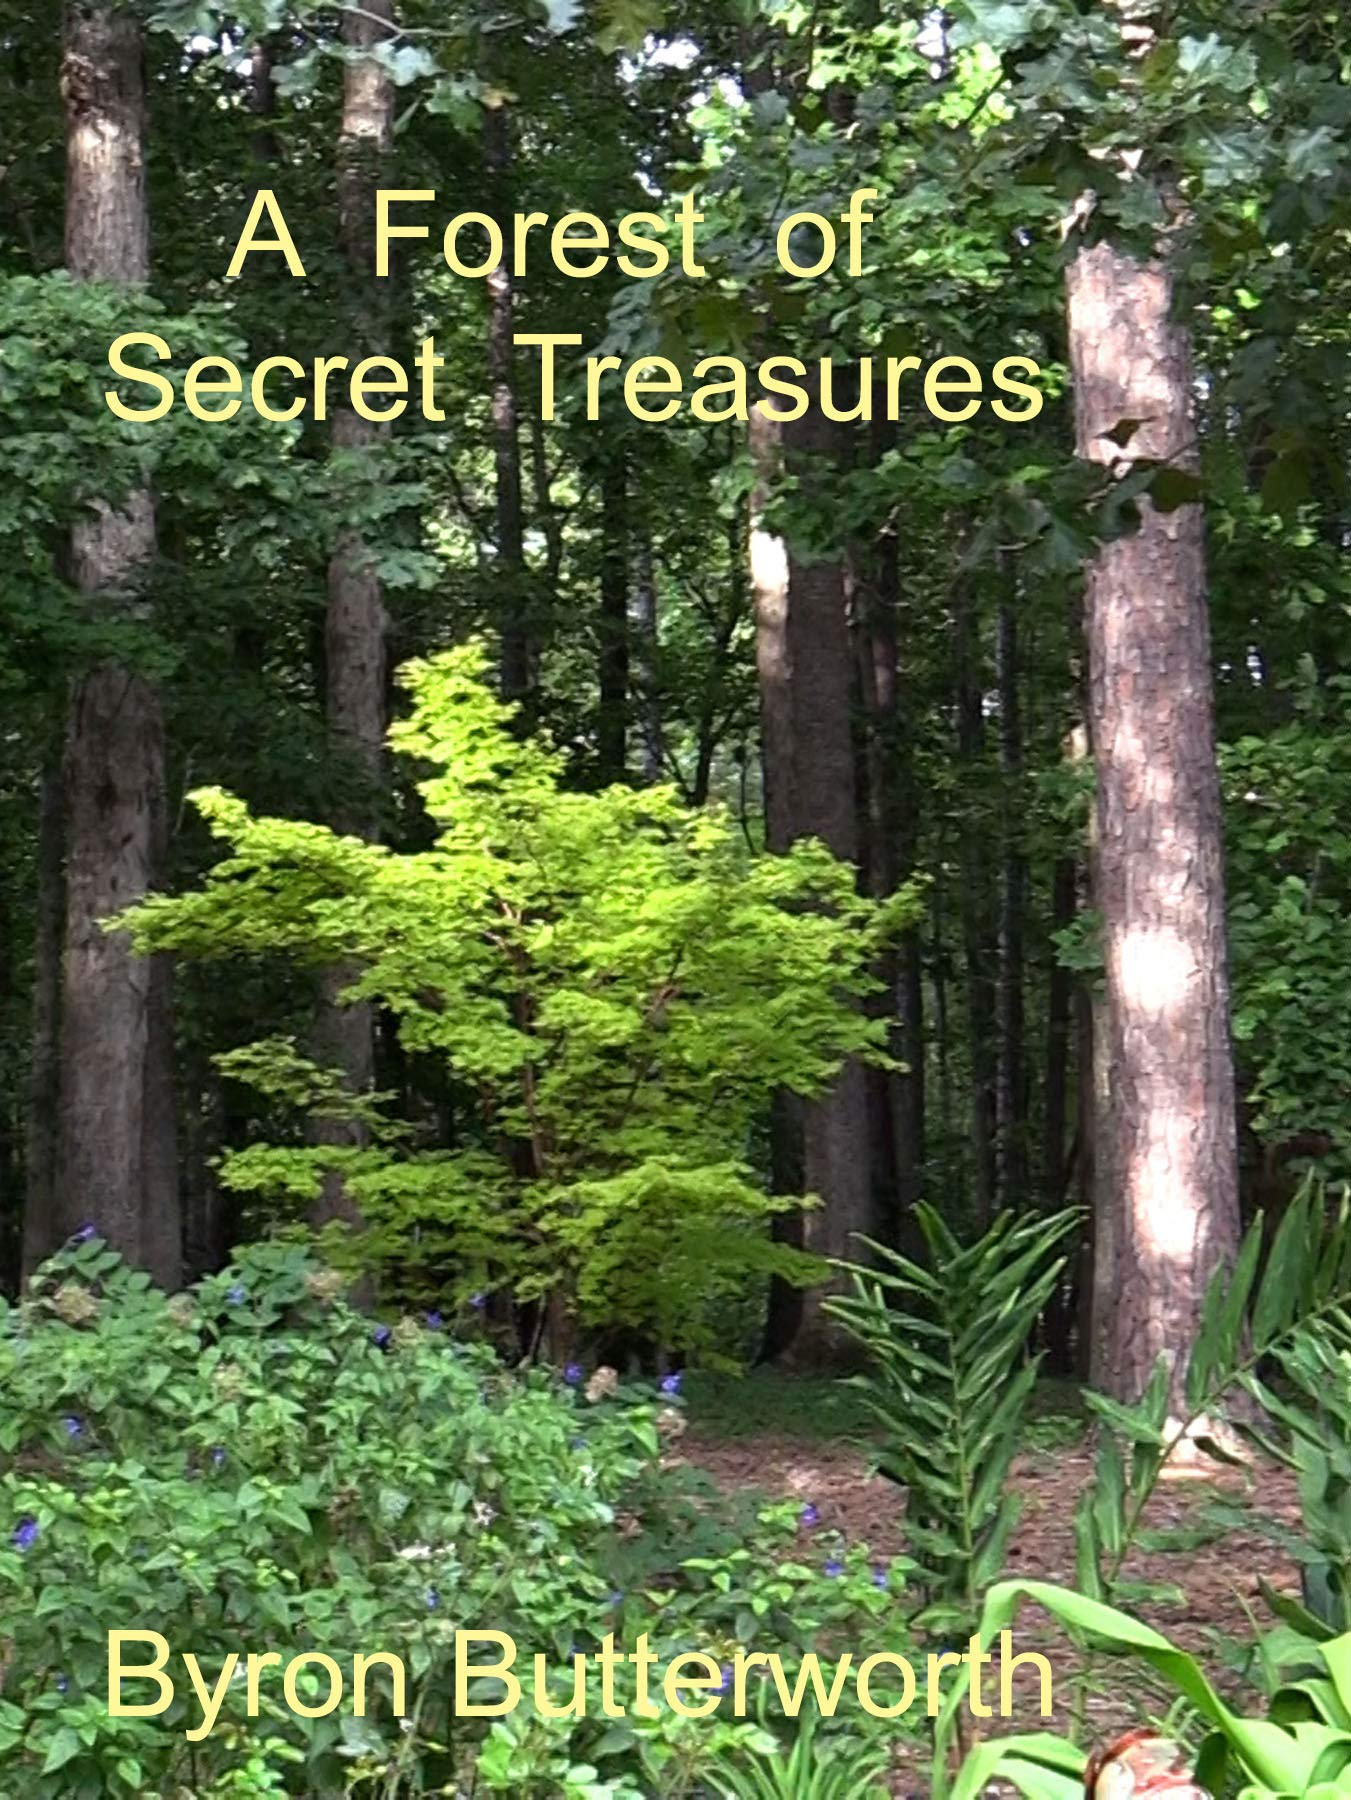 A Forest of Secret Treasures